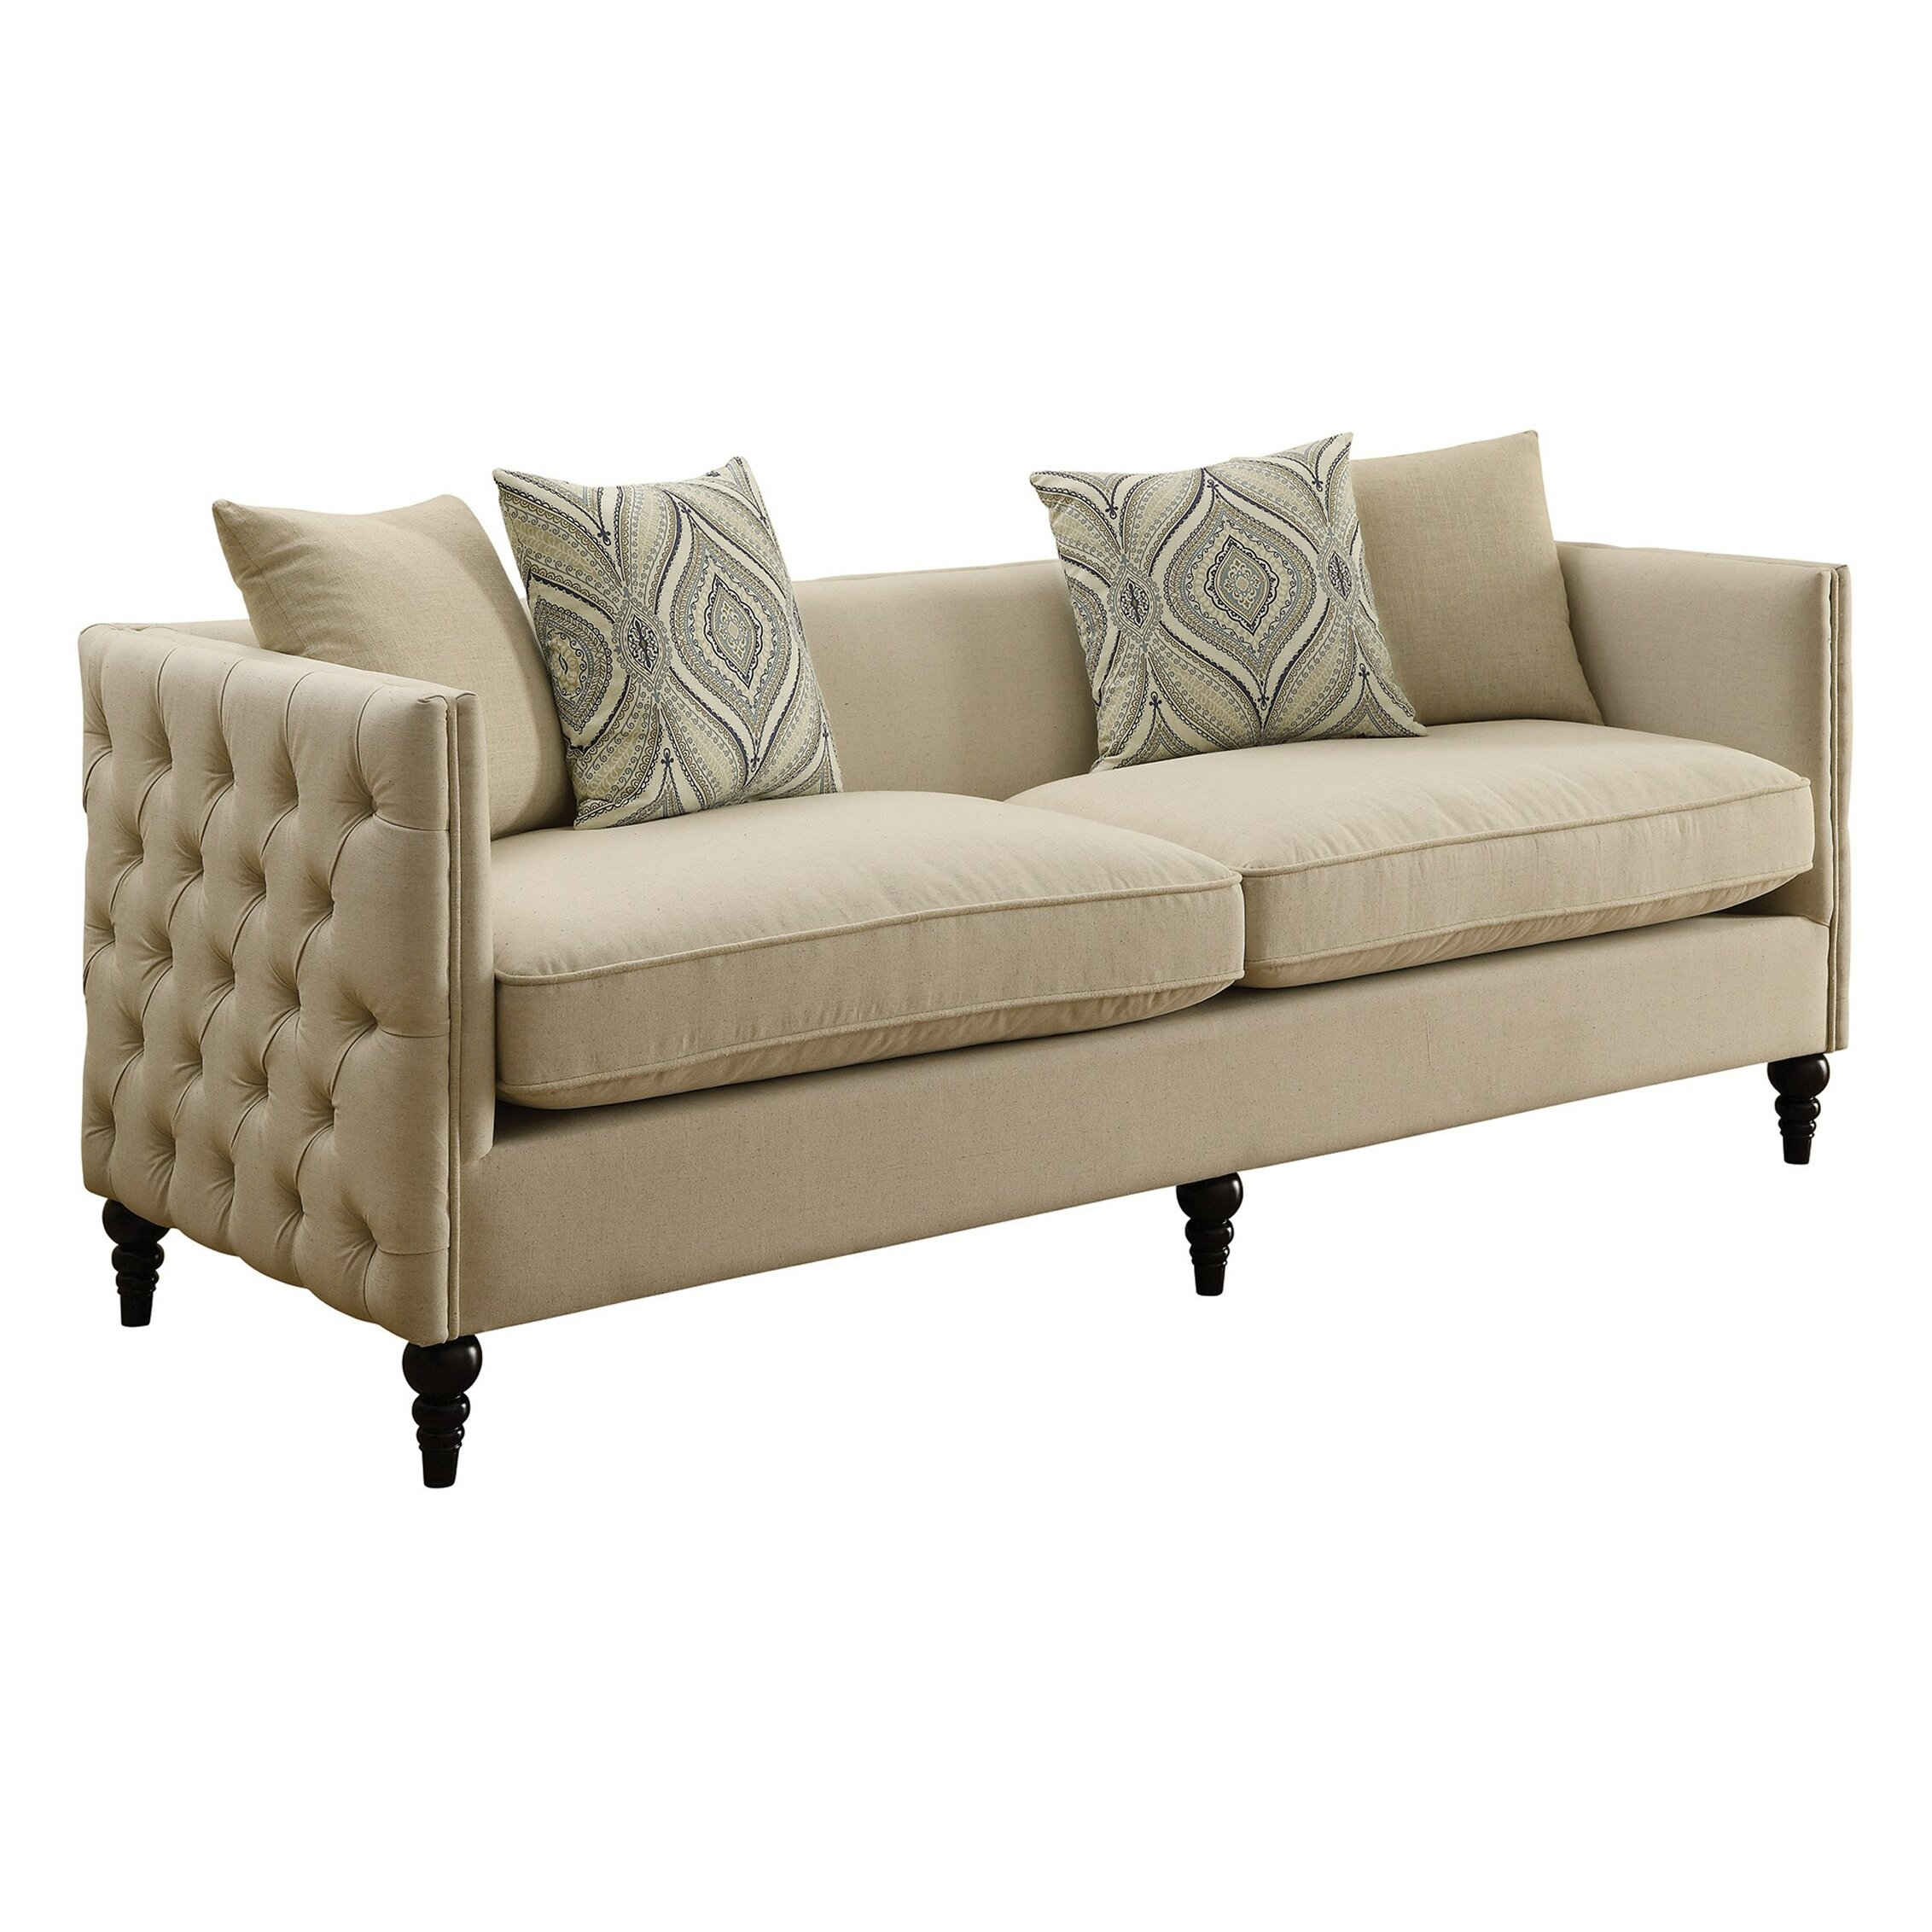 infini furnishings new rochelle sofa and loveseat set. Black Bedroom Furniture Sets. Home Design Ideas